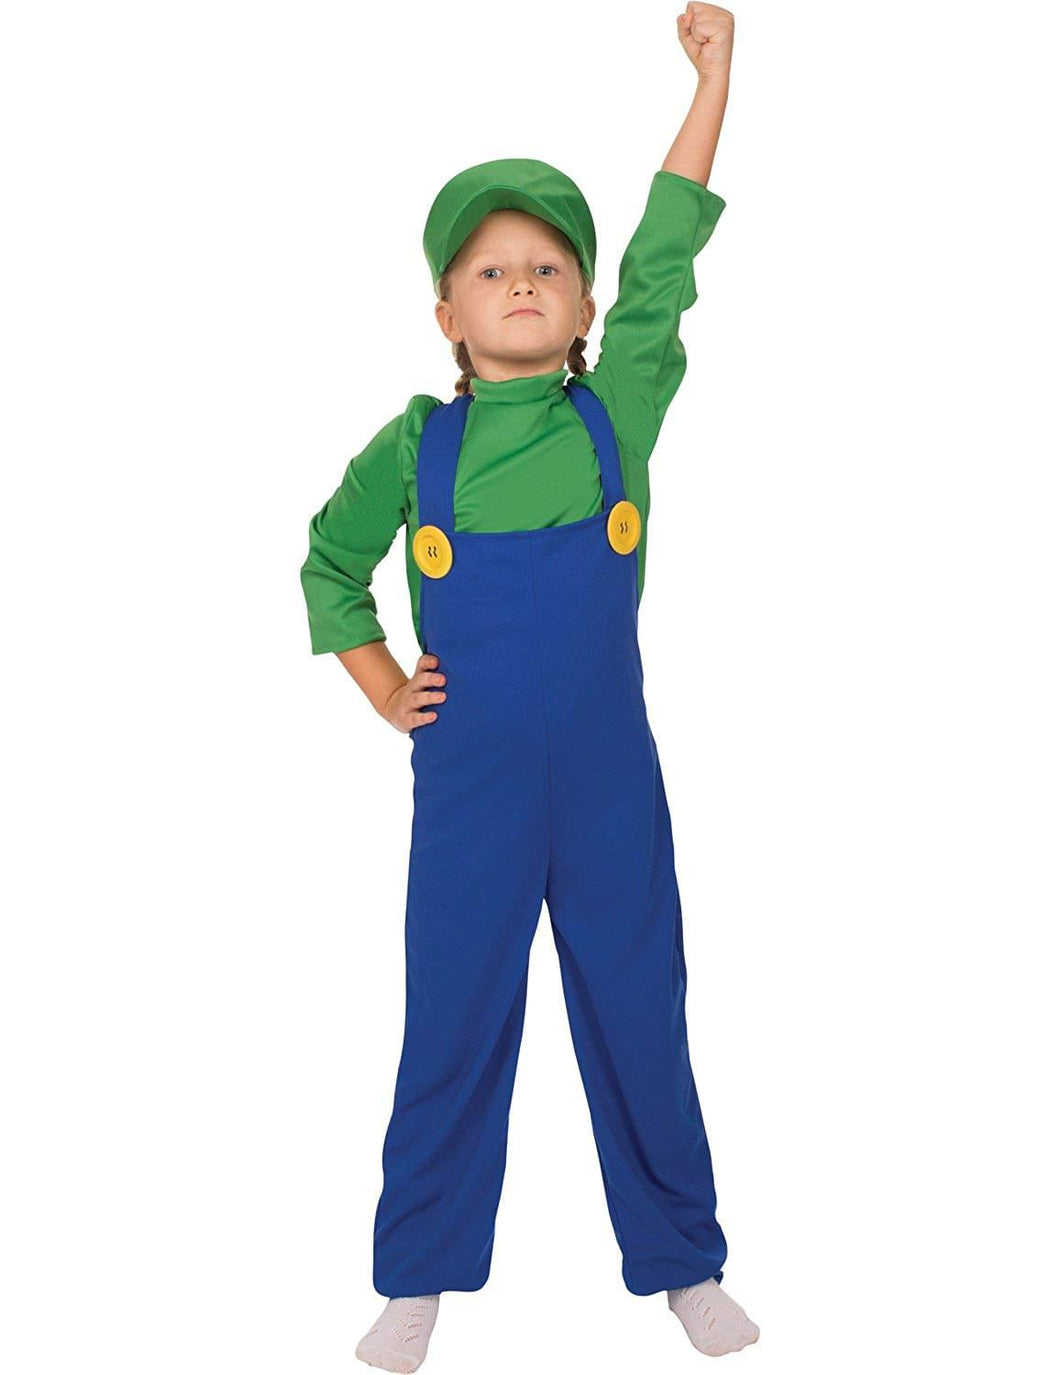 Super Plumber's Friend Child Costume